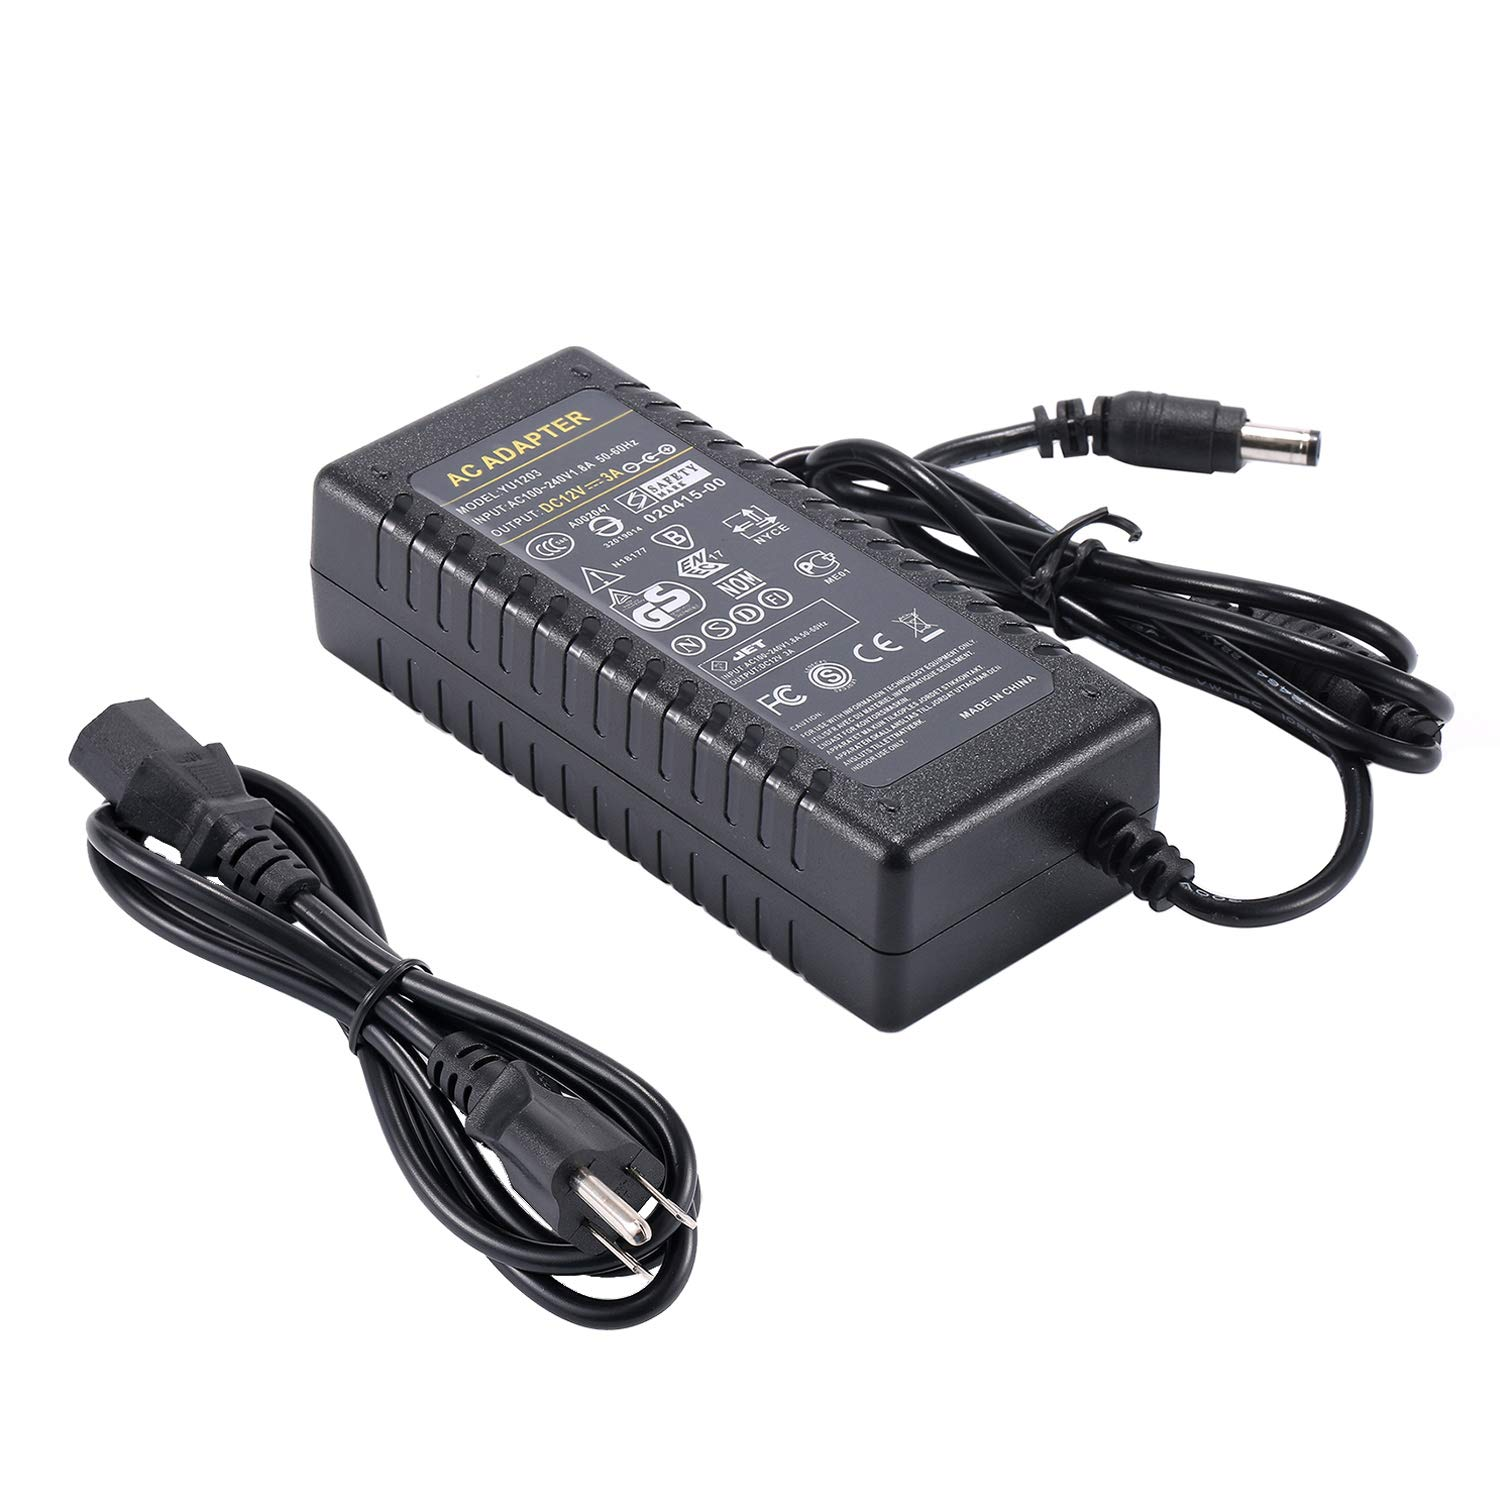 COOLM AC DC Adapter 100-240V to DC 12V 3A LED Power Supply US Plug 5.5x2.5 DC Jack for Security Monitoring System, LED Strips HUAPU YU1203